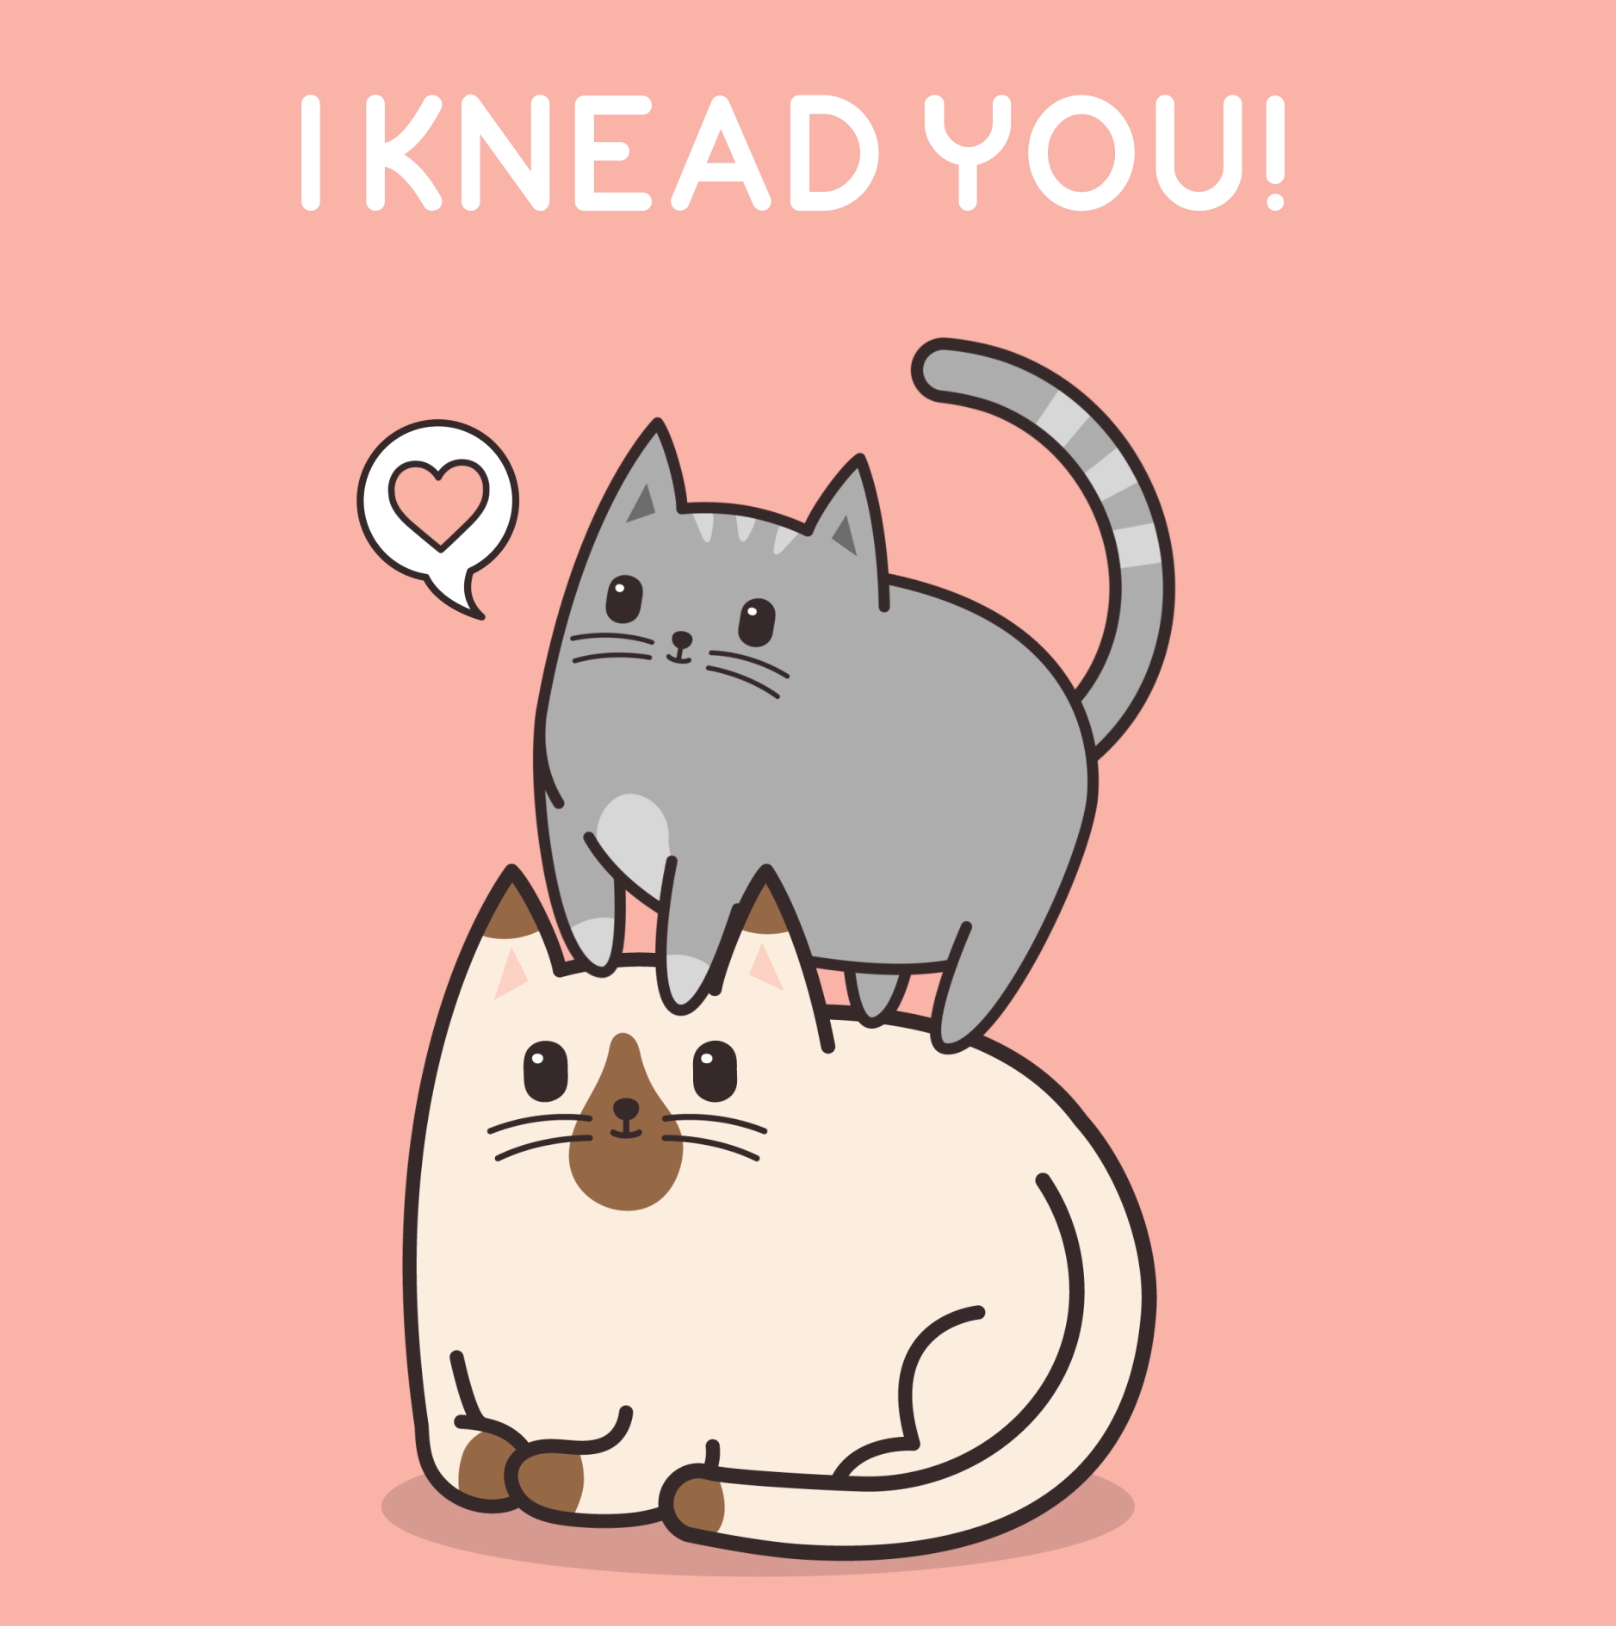 Image of: Sweetheart i Loaf You Meow And Forever Meowingtons 14 Purrfect Puns For Your Punloving Valentine Meowingtons